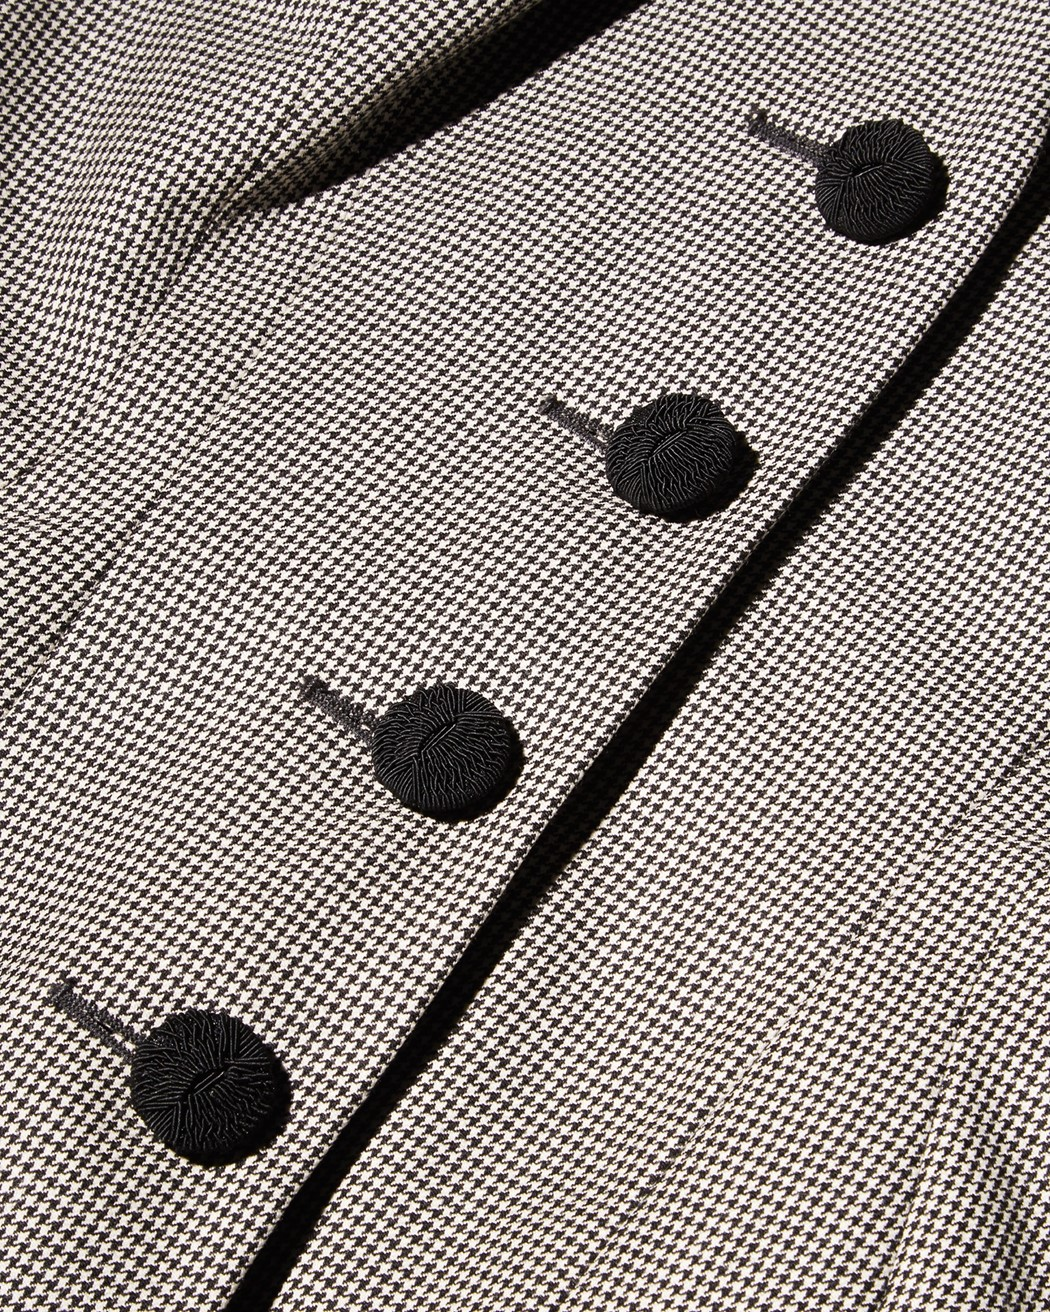 Houndstooth suit, John Galliano, spring/summer 1995